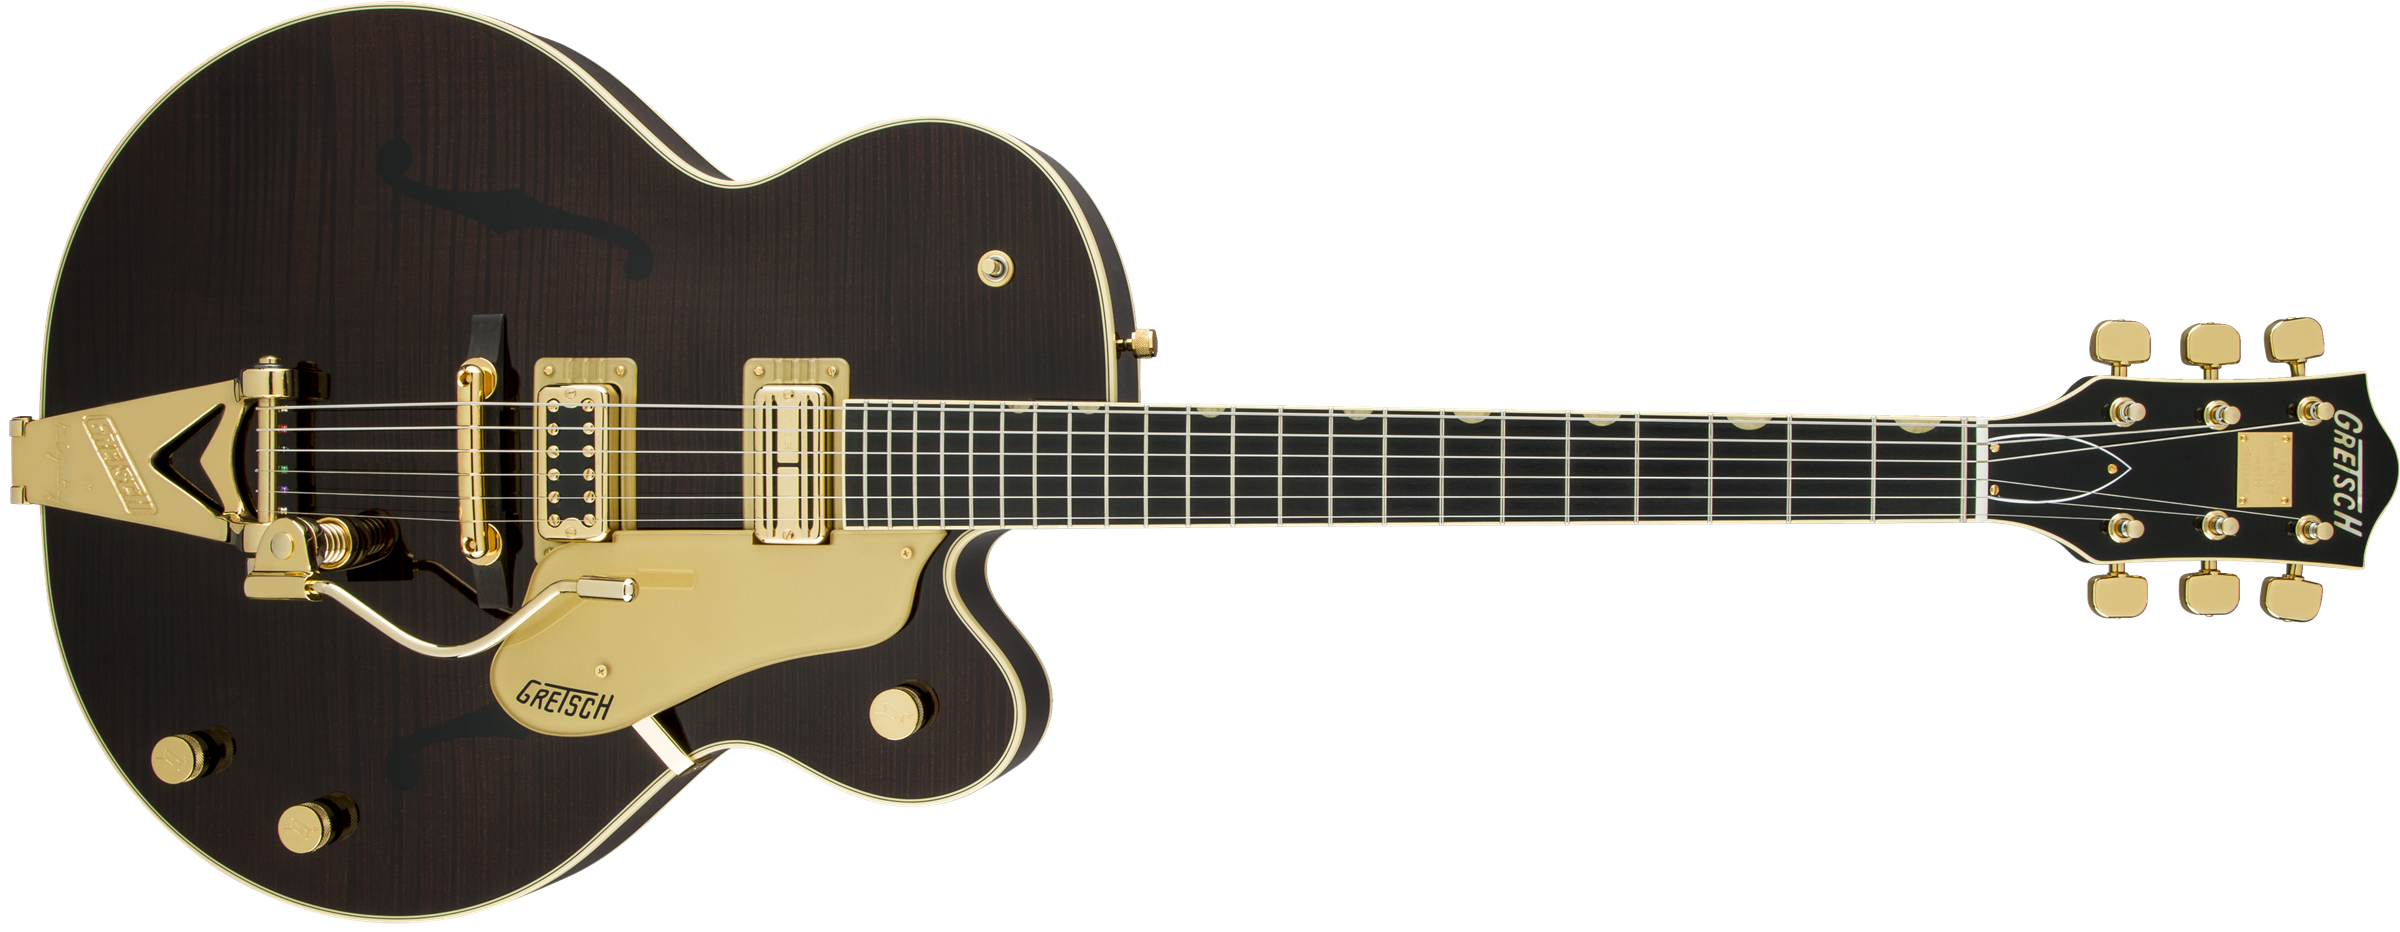 GRETSCH-G6122T-59-Vintage-Select-Edition-59-Chet-Atkins-Country-Gentleman-Hollow-Body-with-Bigsby-TV-Jones-Tiger-Flame-Maple-Walnut-Stain-Lacquer-sku-571000153